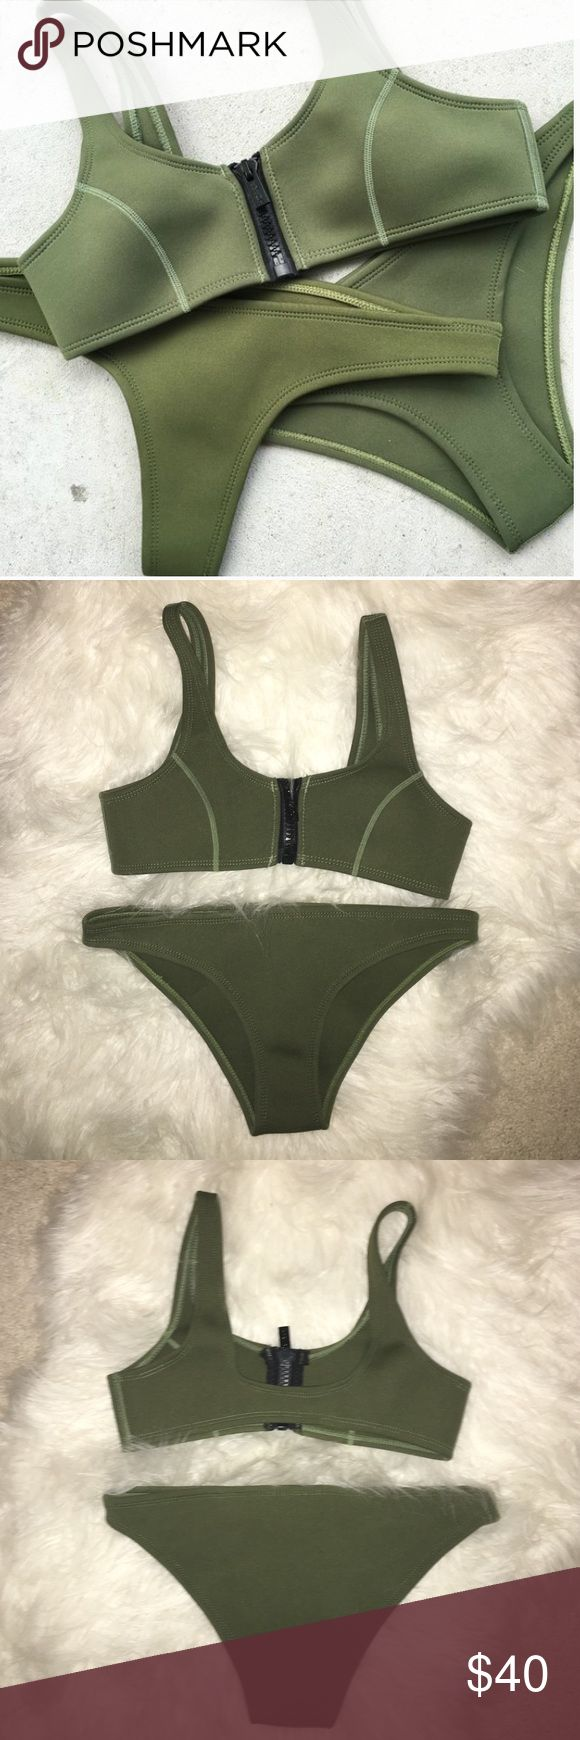 Olive Green Neoprene Bikini Purchased from Hoaka Swimwear, top is too small on me. Top would fit a small A cup best. Bottoms are slightly cheeky. Both size XS. Worn once! Brand tagged for exposure, not Frankie's. Frankie's Bikinis Swim Bikinis